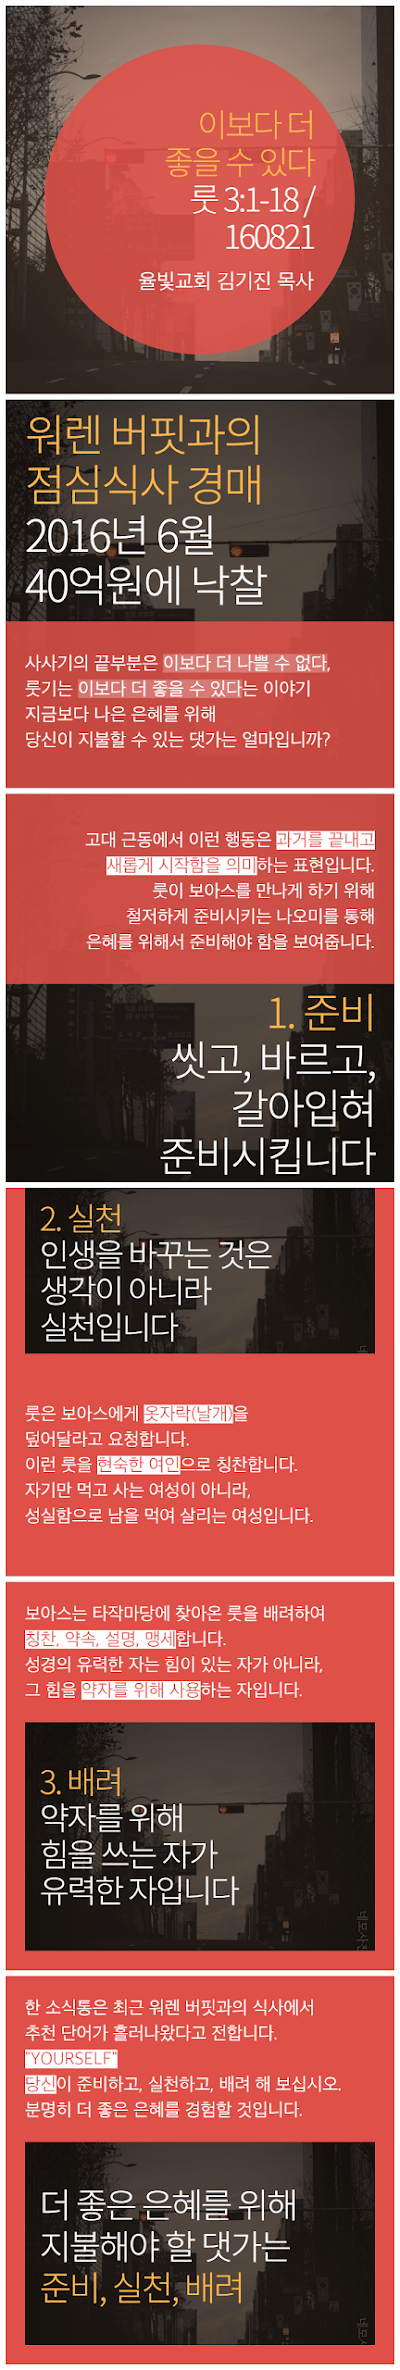 160821_7.png